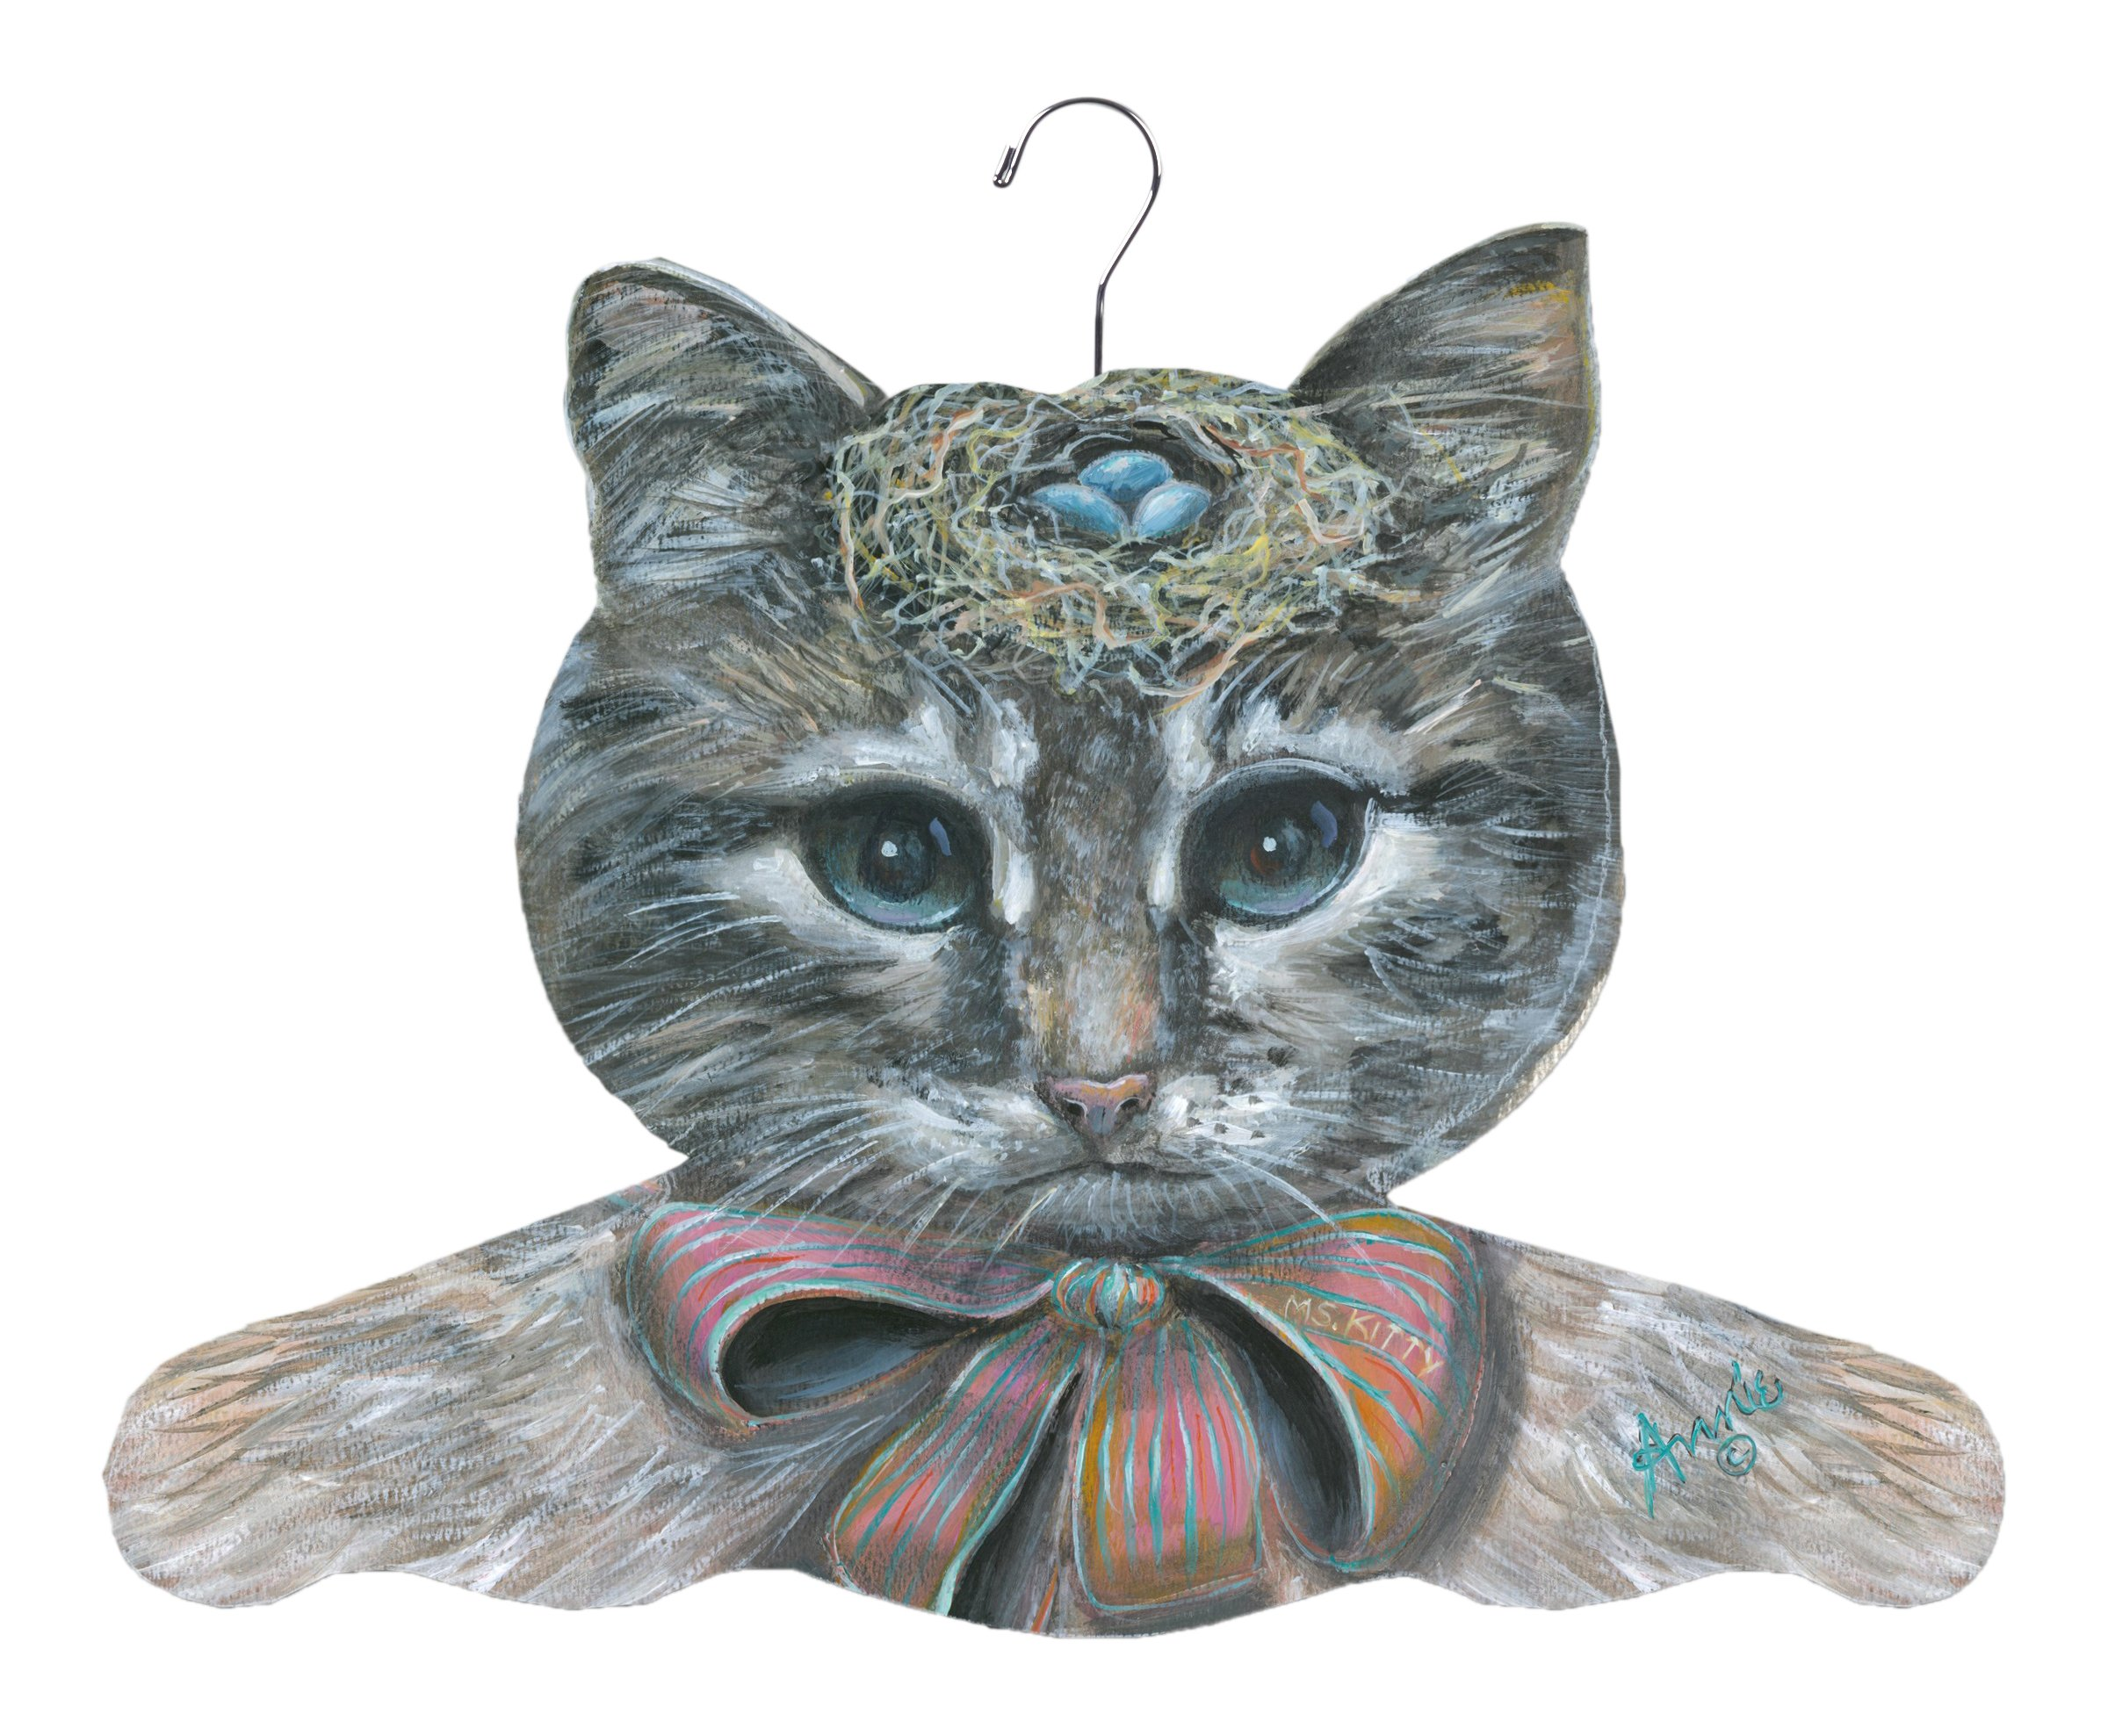 Stupell Home Décor Cat With Nest Hat Hanger, 17 x 0.4 x 11, Proudly Made in USA by The Stupell Home Decor Collection